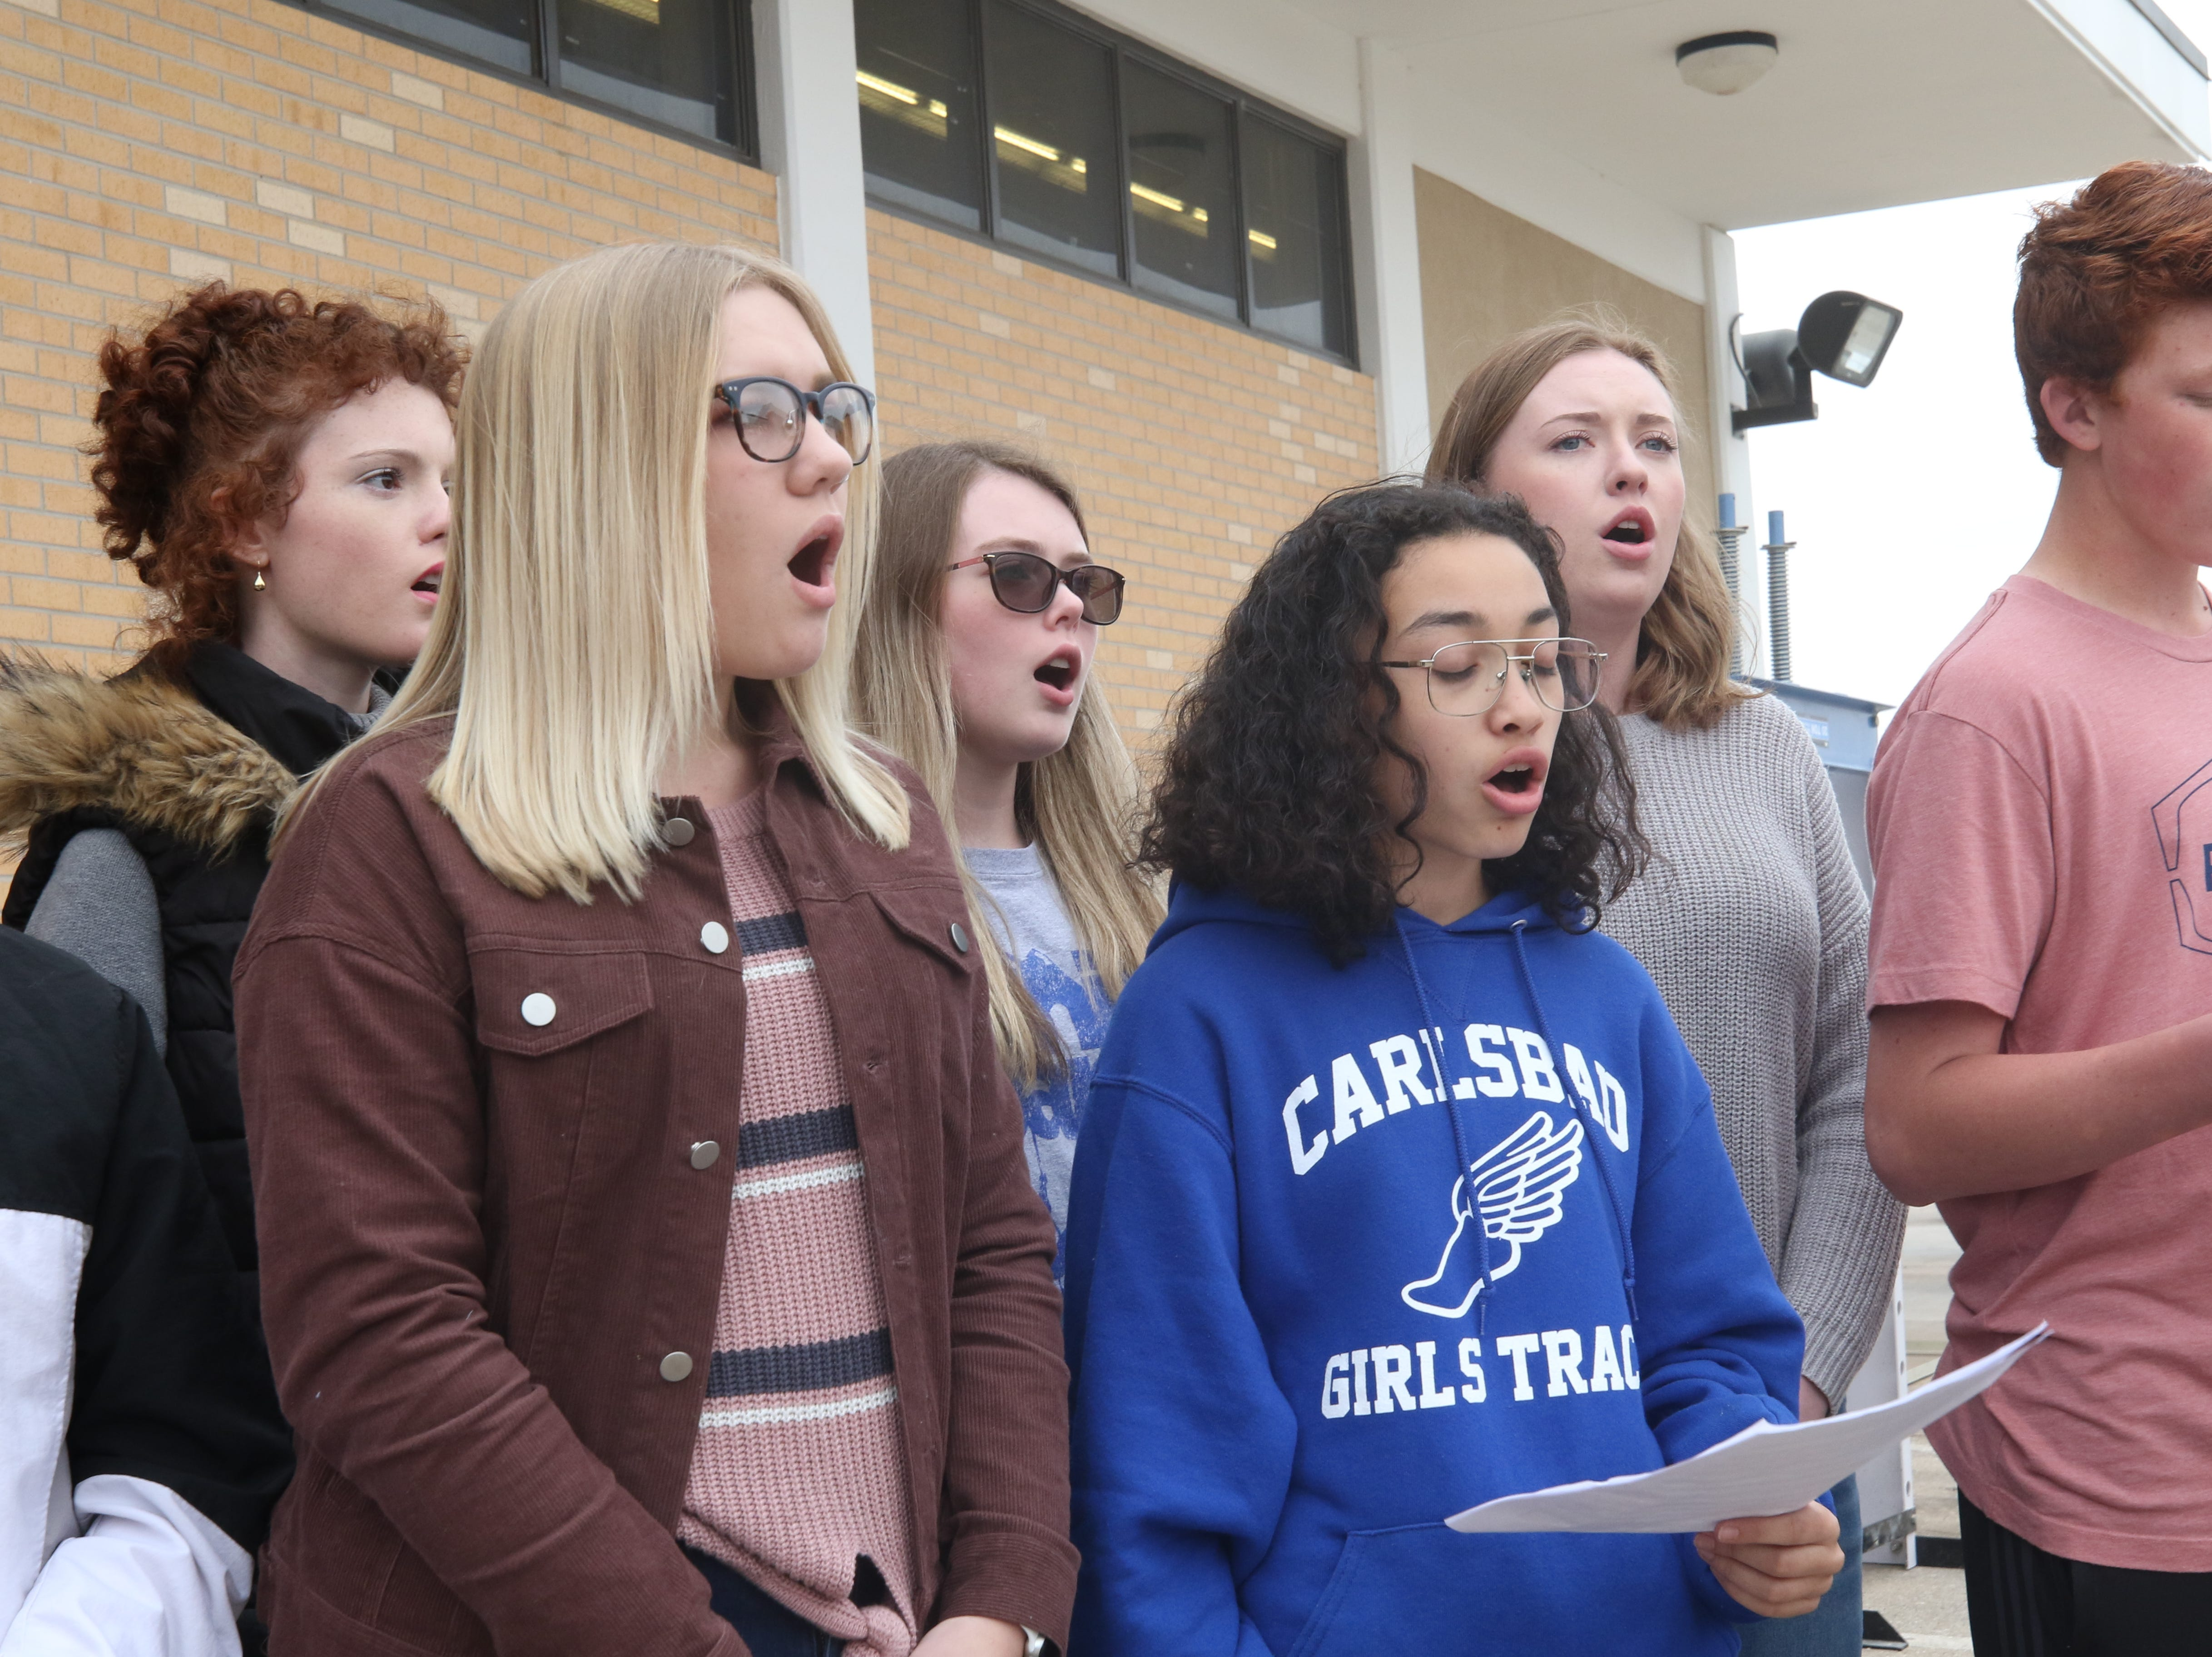 Members Carlsbad High School's choir sing during a ceremony to accept an equipment donation from XTO Energy, March 11, 2019 at Carlsbad High School.